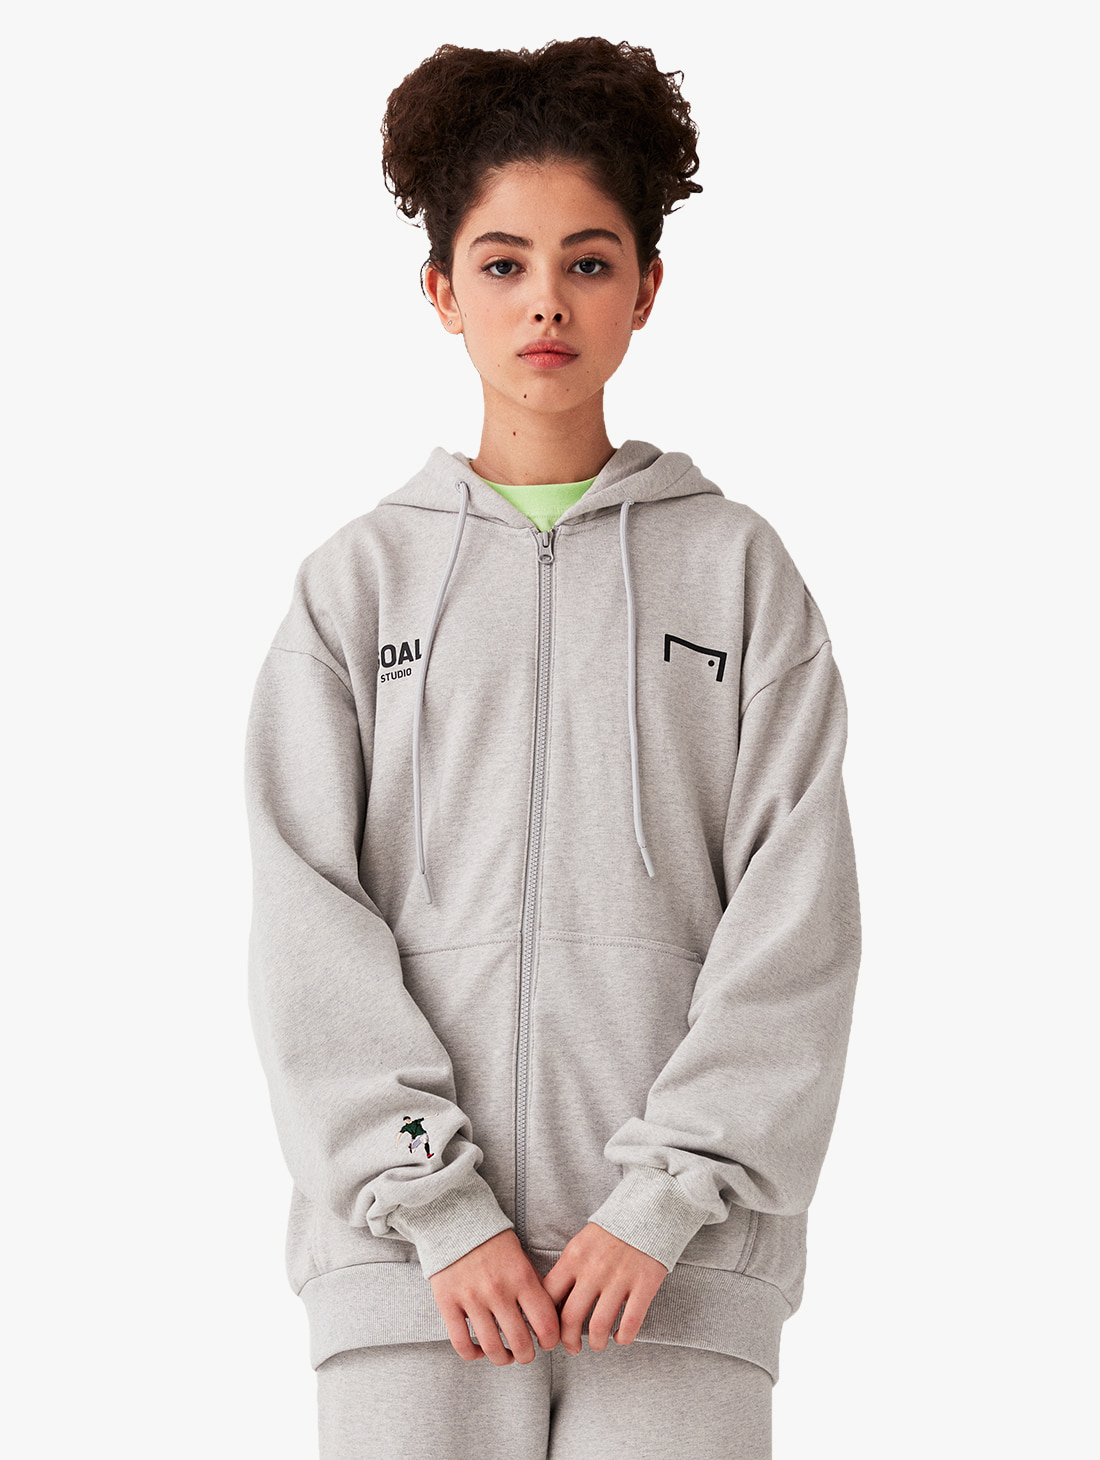 SIGNATURE ZIP UP HOODIE (3 Colors)